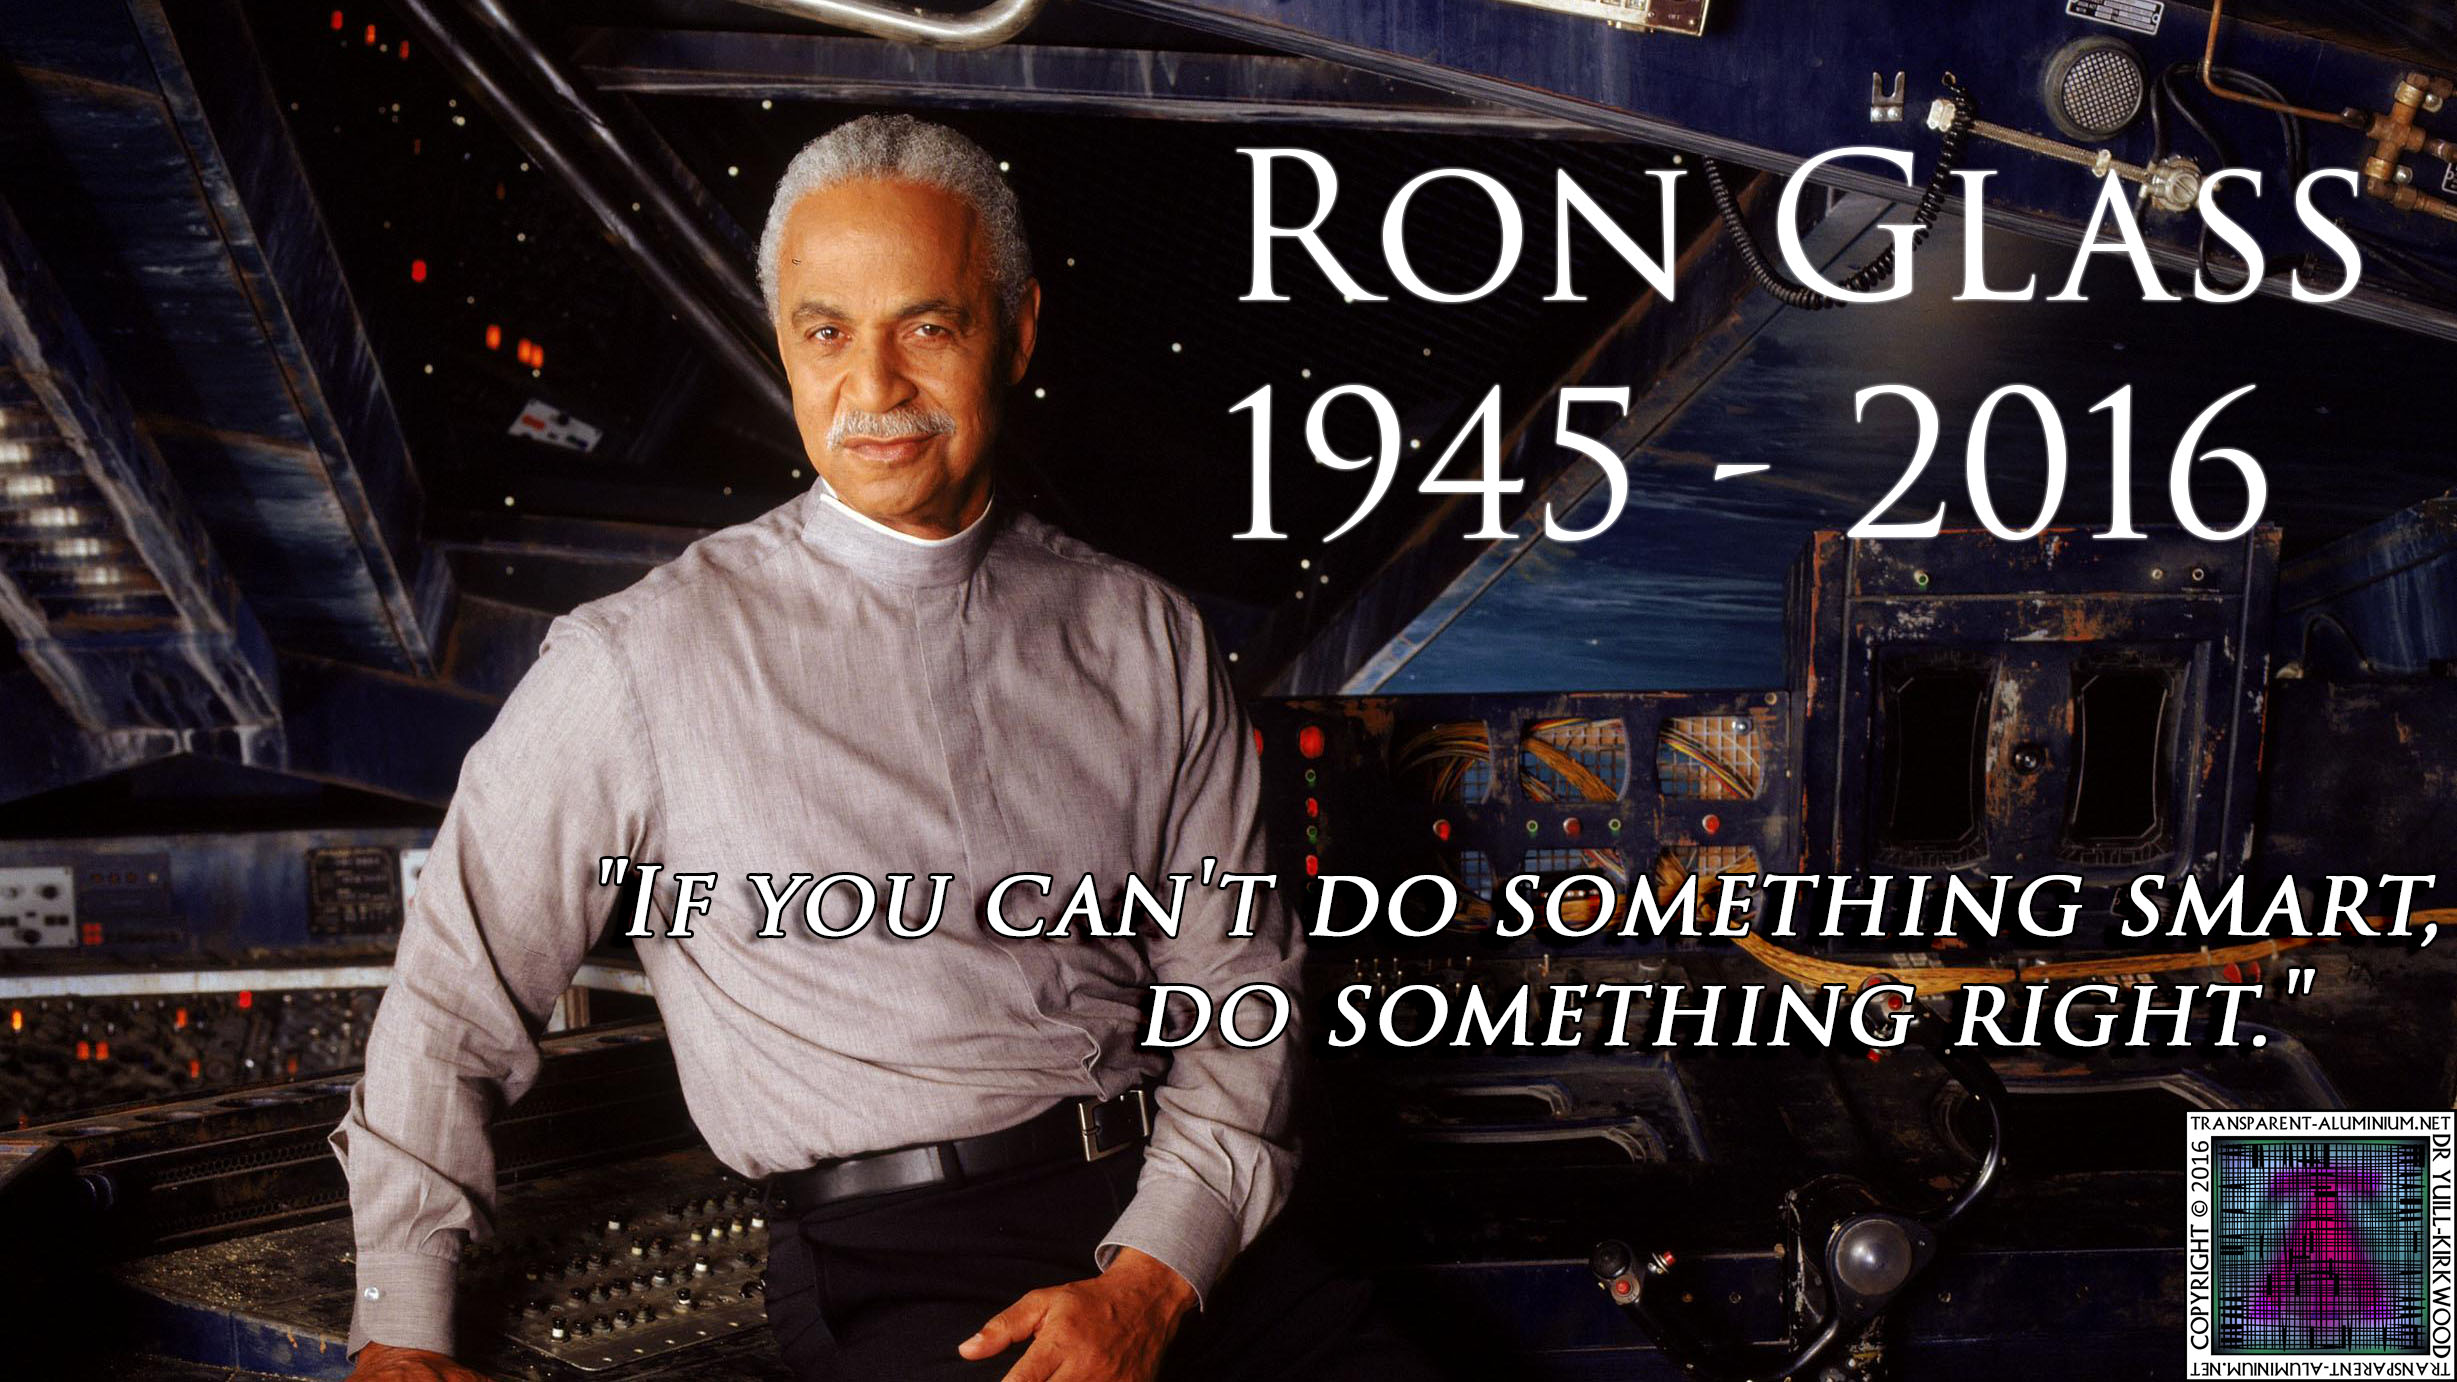 Ron Glass 1945-2016